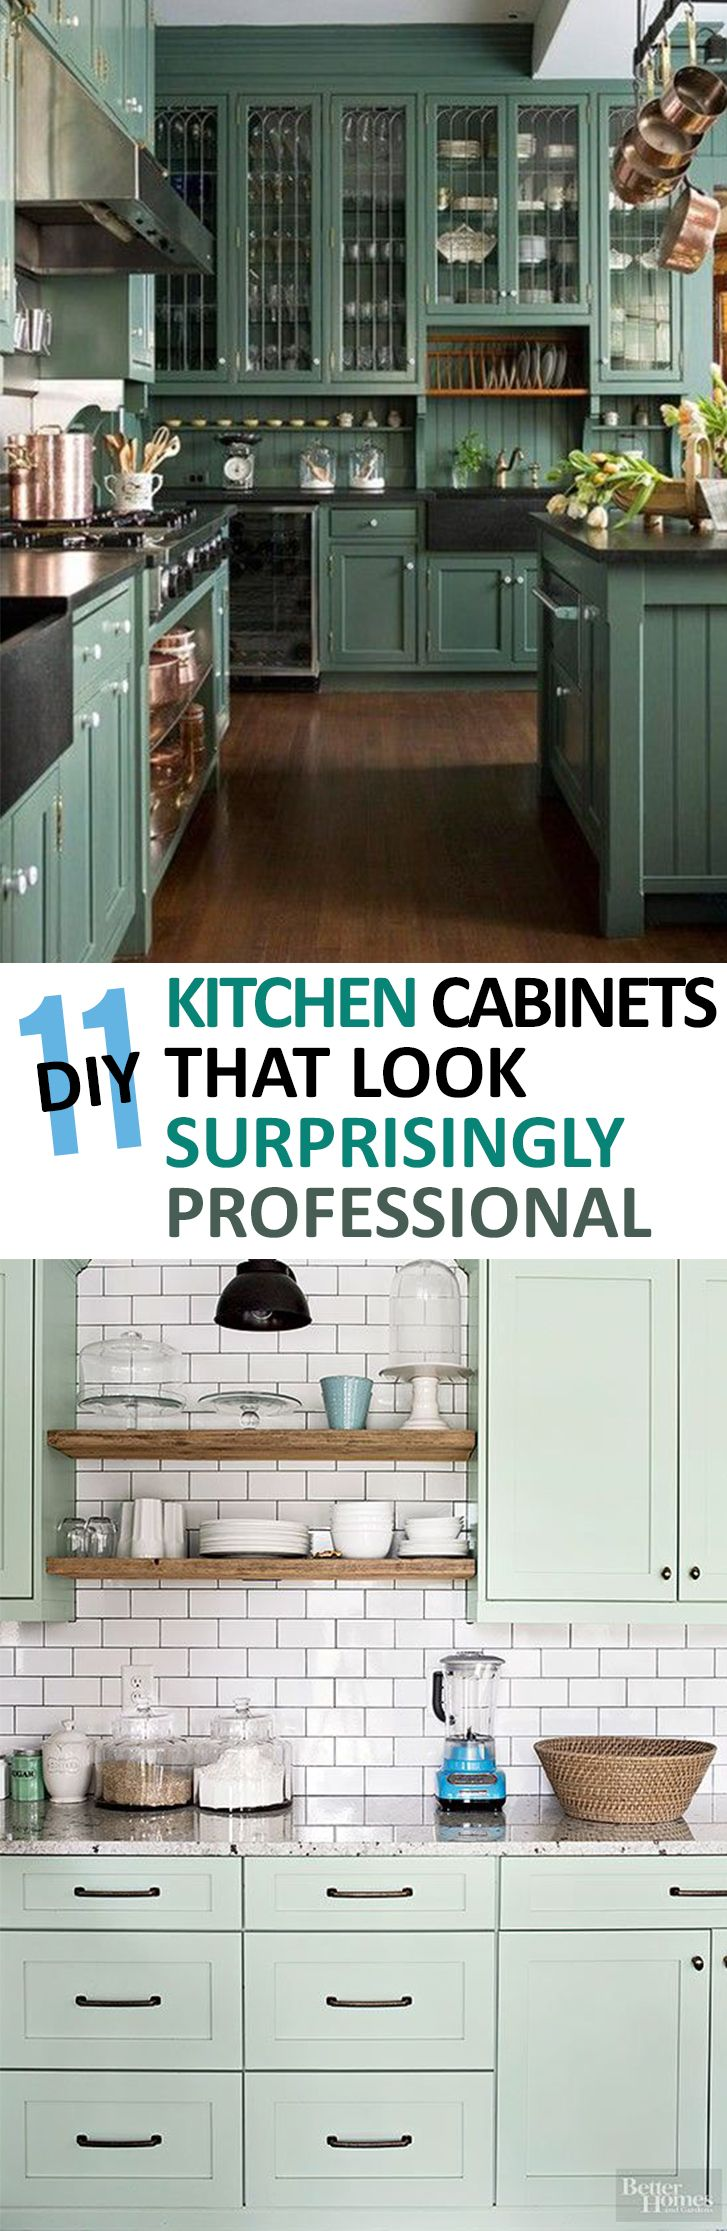 11 painted kitchen cabinets that look surprisingly professional 11 diy kitchen cabinets that look surprisingly professional solutioingenieria Images